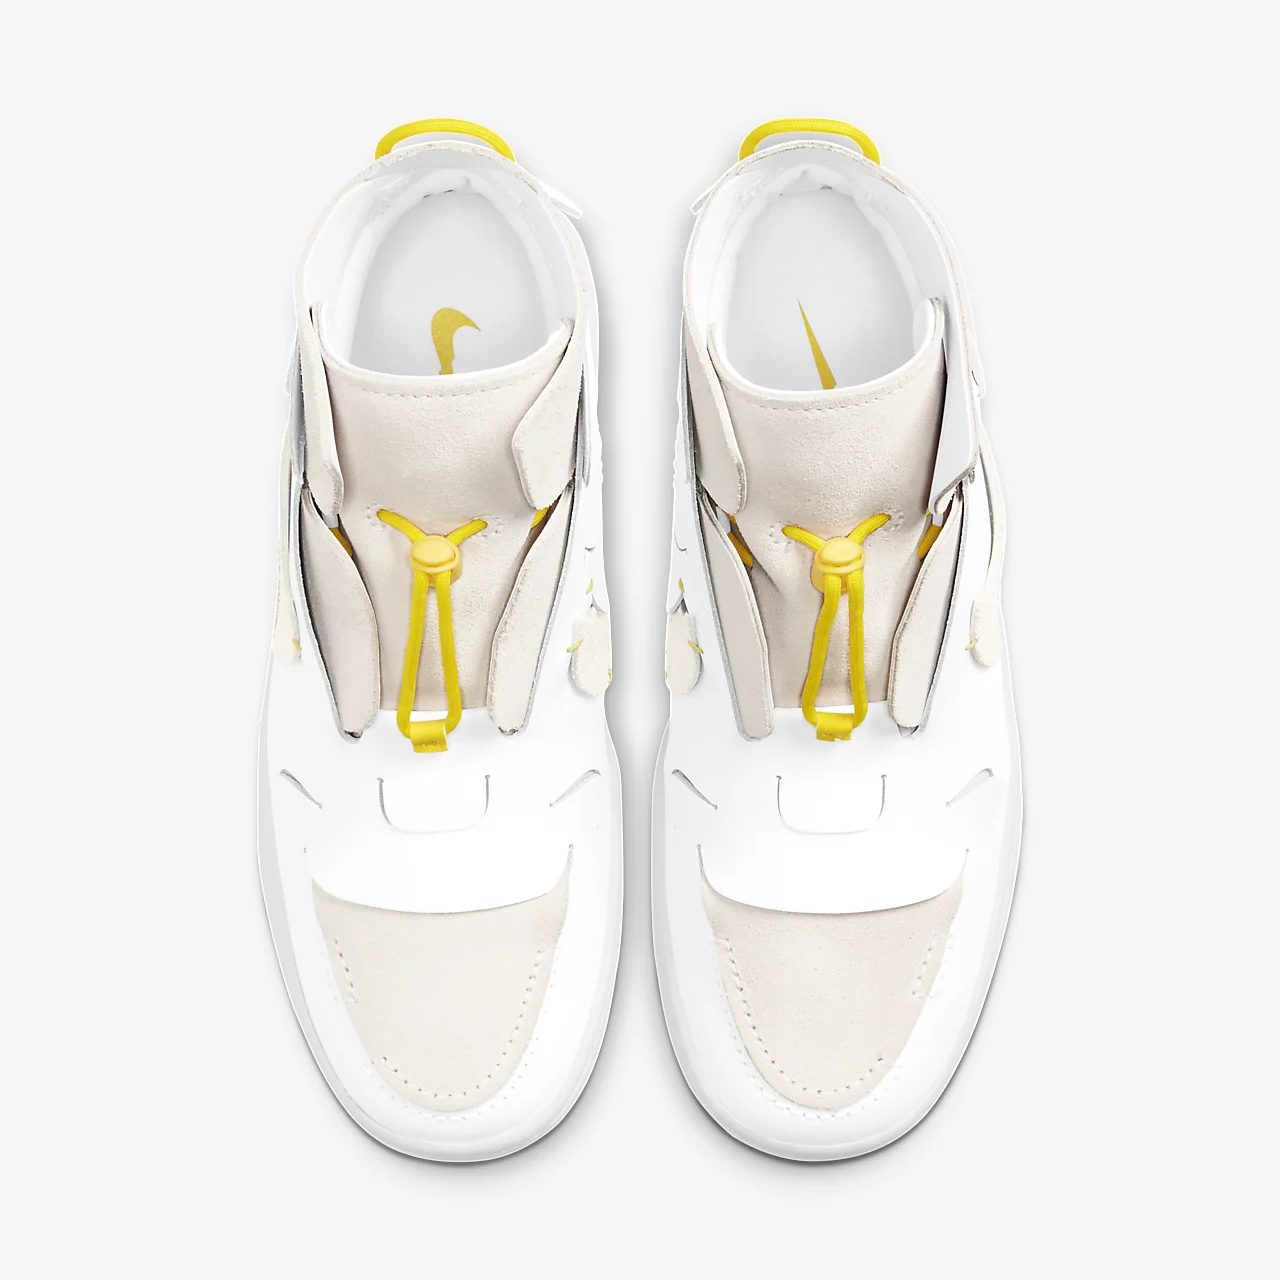 유럽직배송 나이키 NIKE Nike Vandalised Women's Shoe BQ3610-100